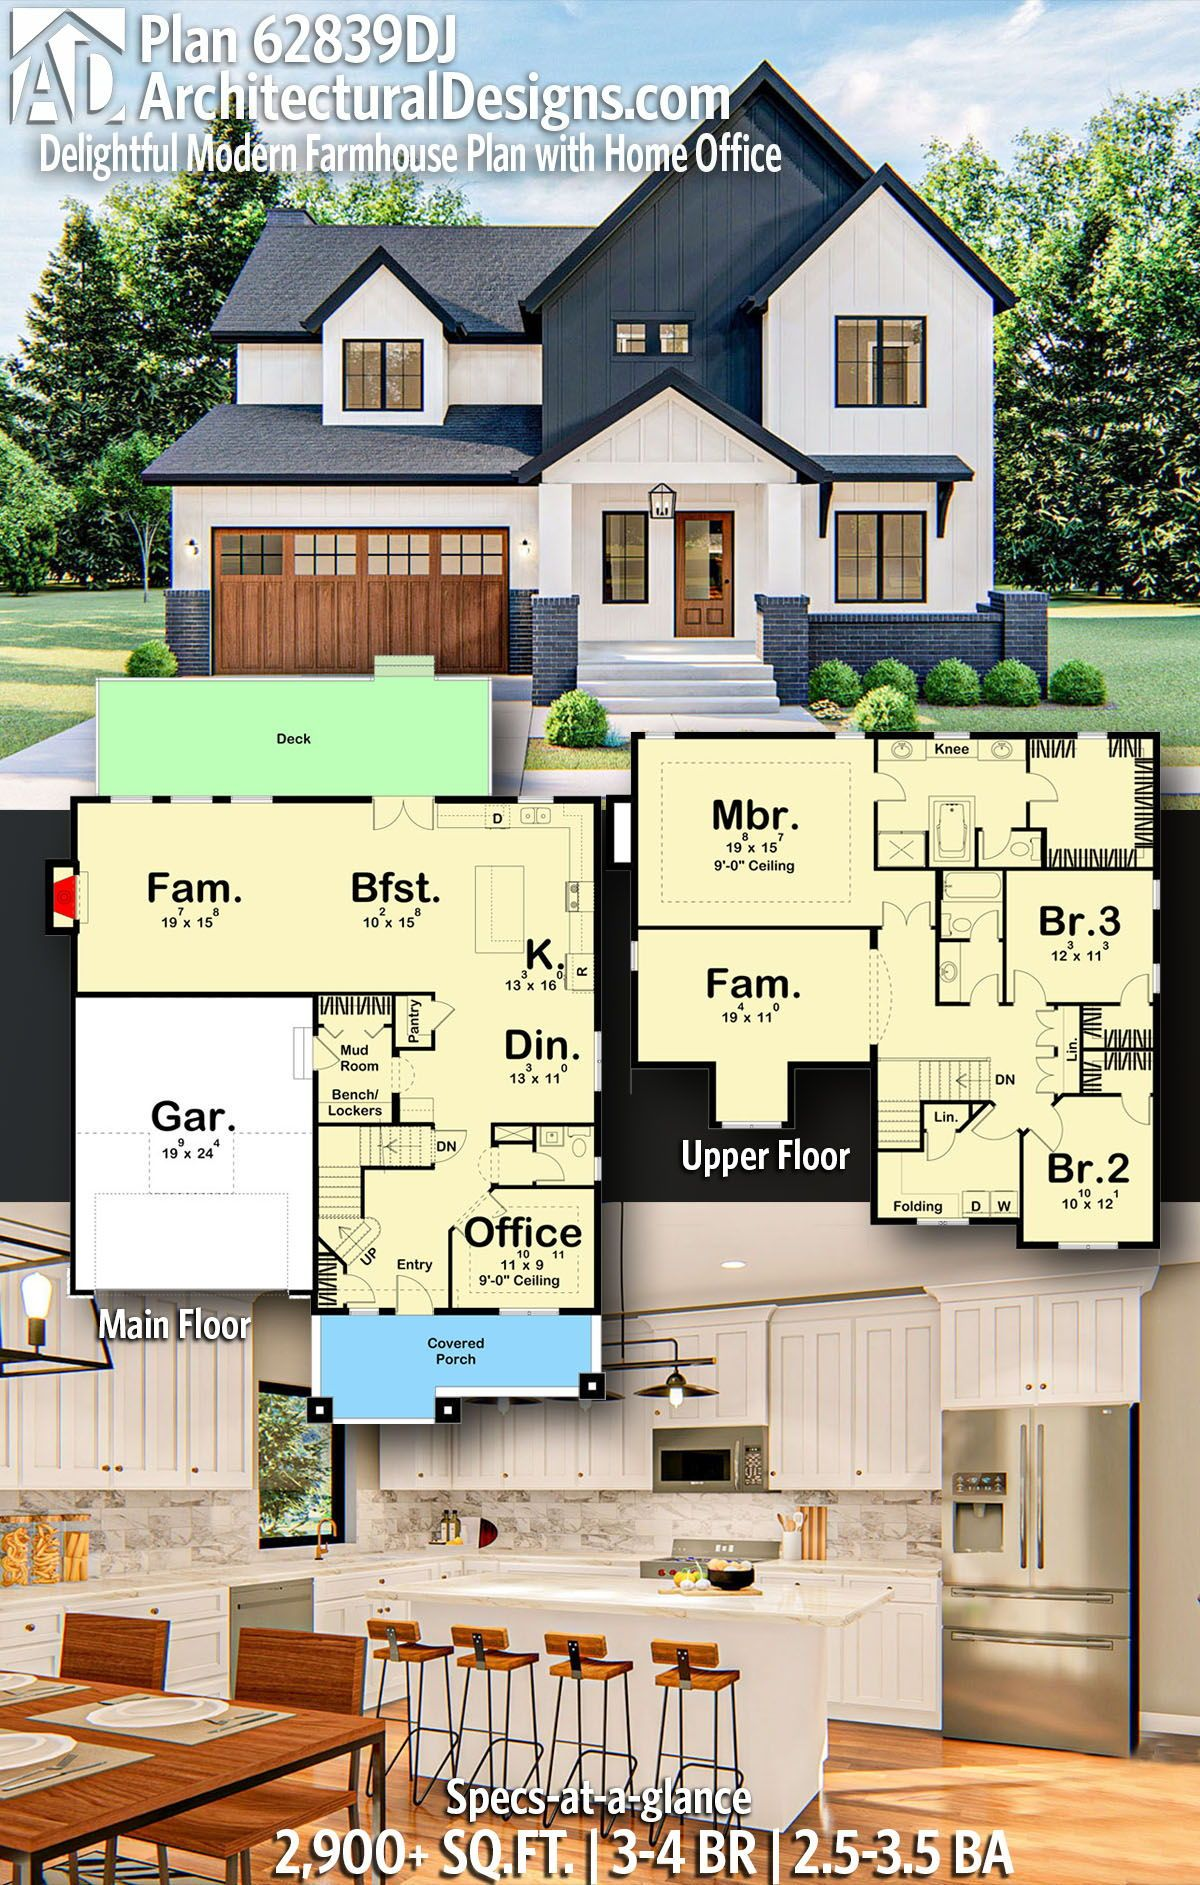 Plan 62839dj Delightful Modern Farmhouse Plan With Home Office In 2020 House Plans Farmhouse Affordable House Plans Open Floor House Plans